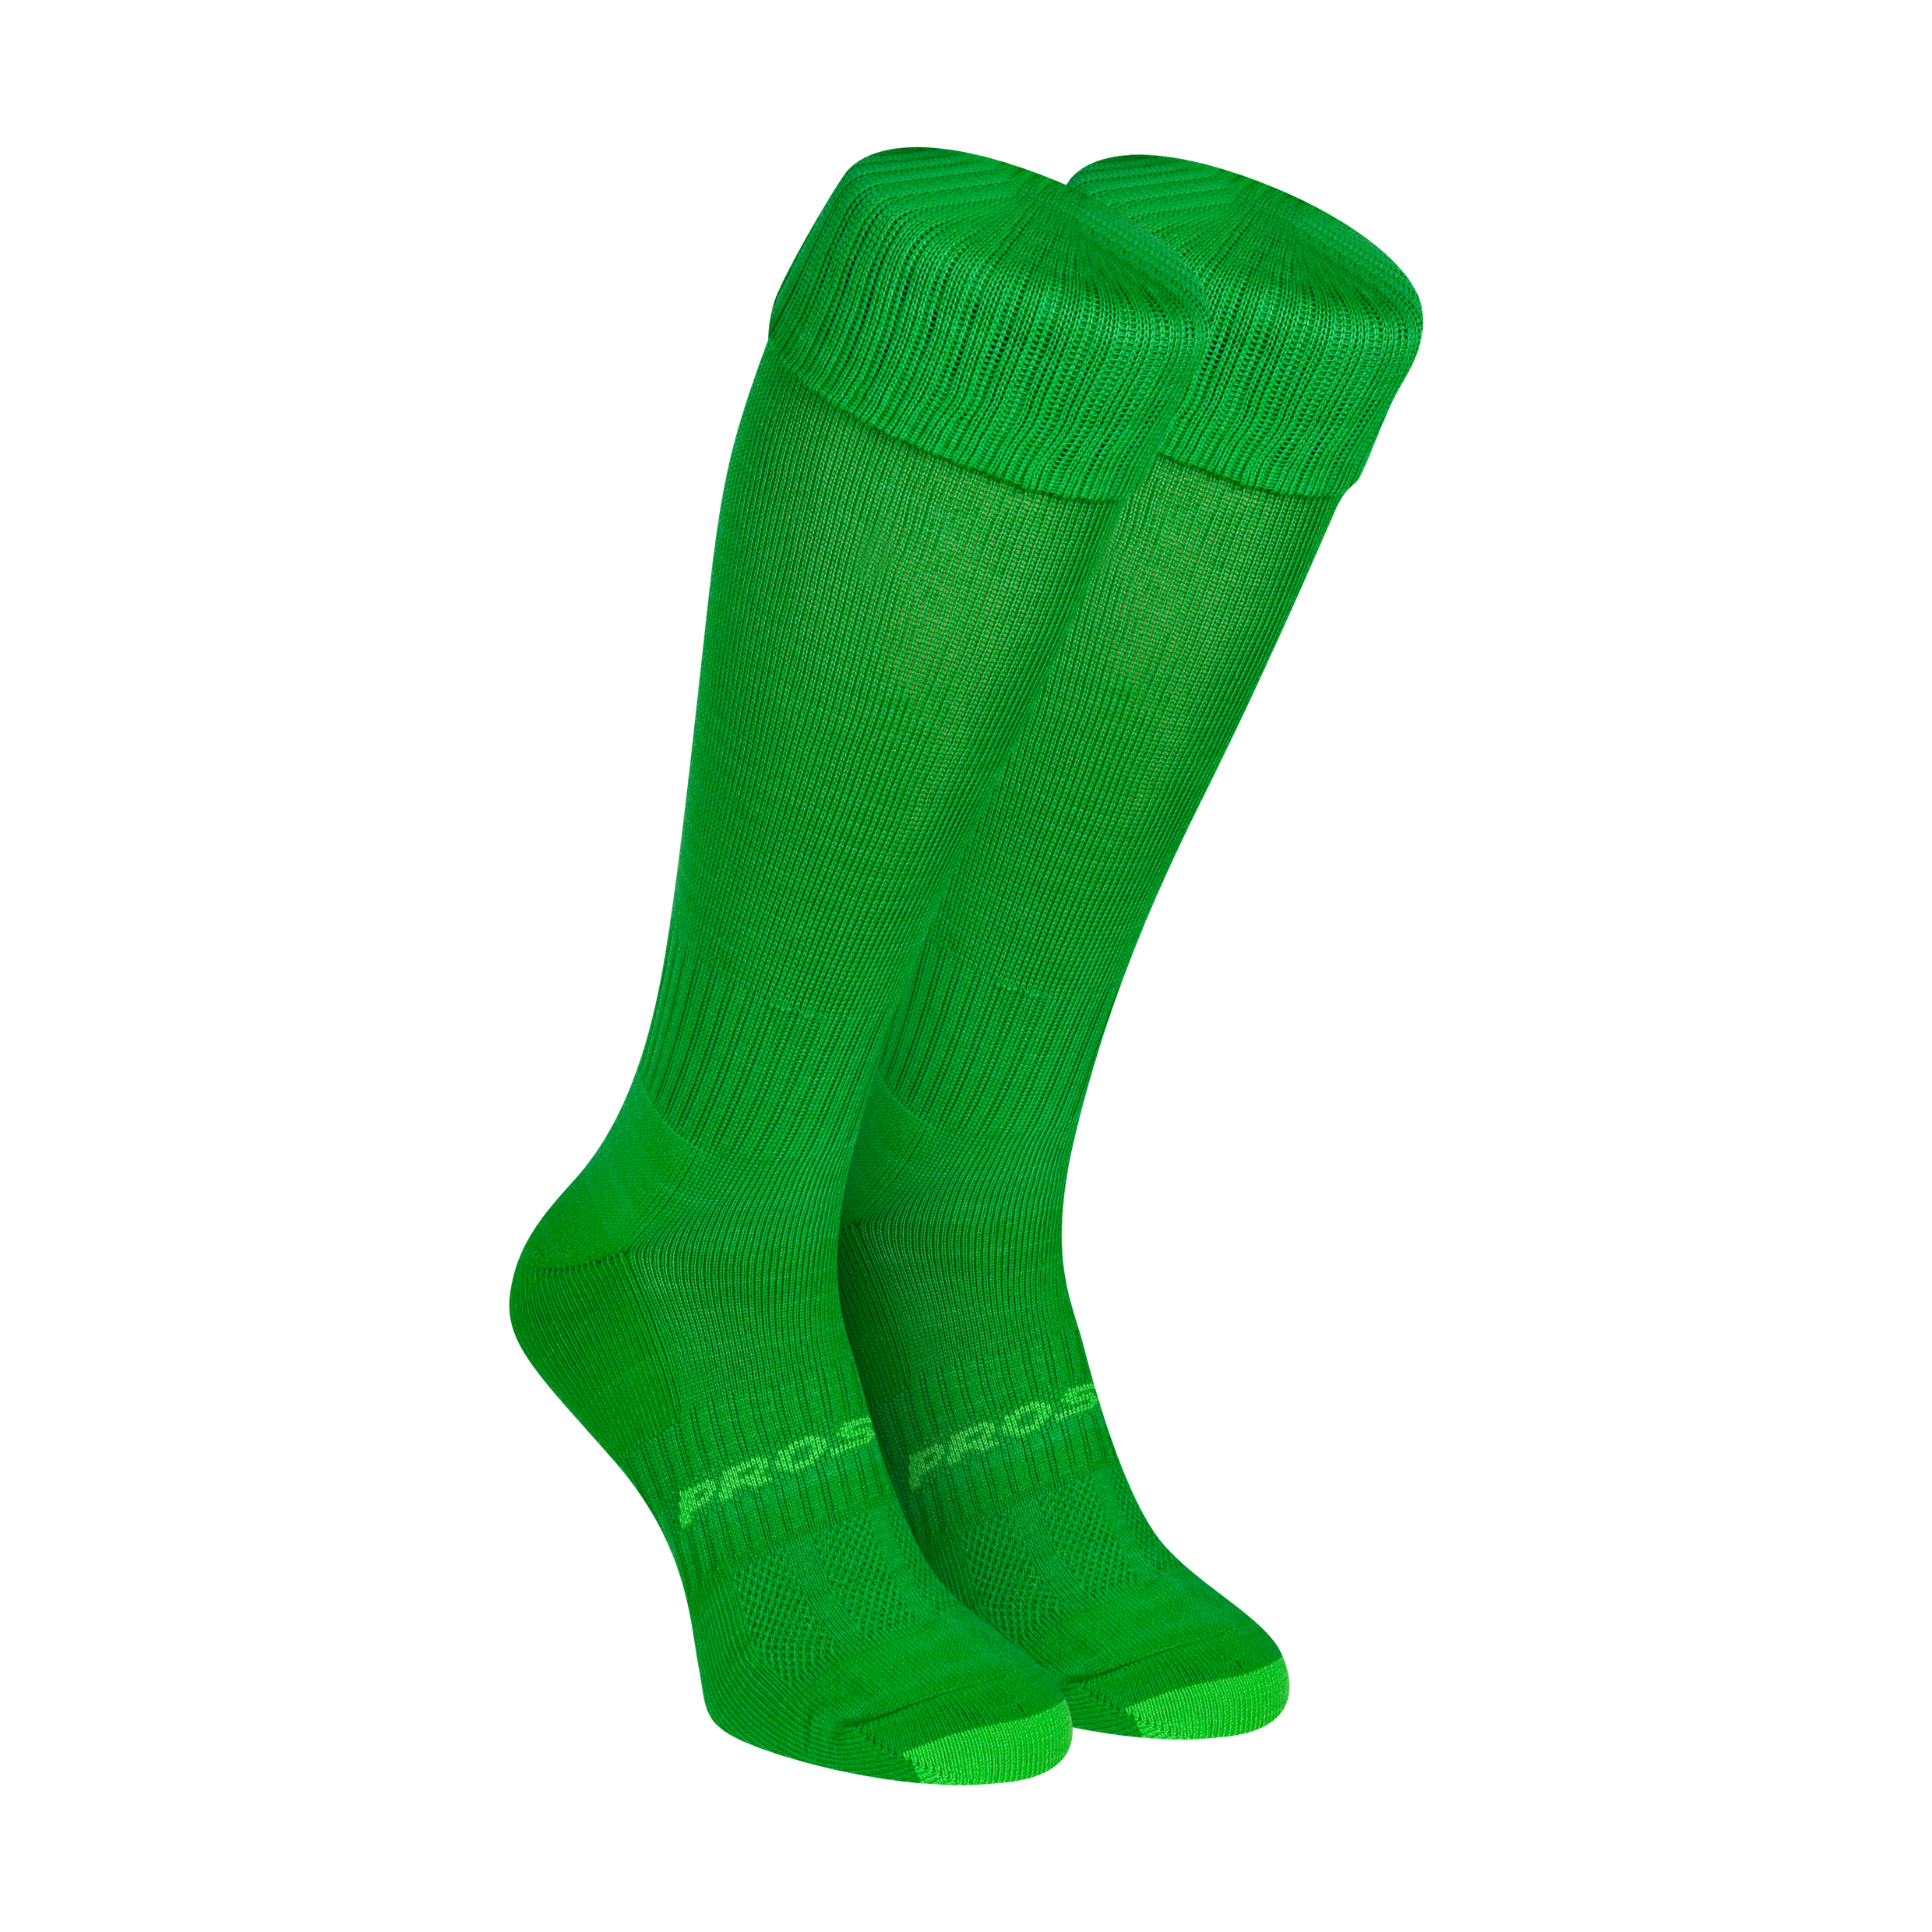 Mitre Mercury Football Socks - Emerald Green - Size 7-11